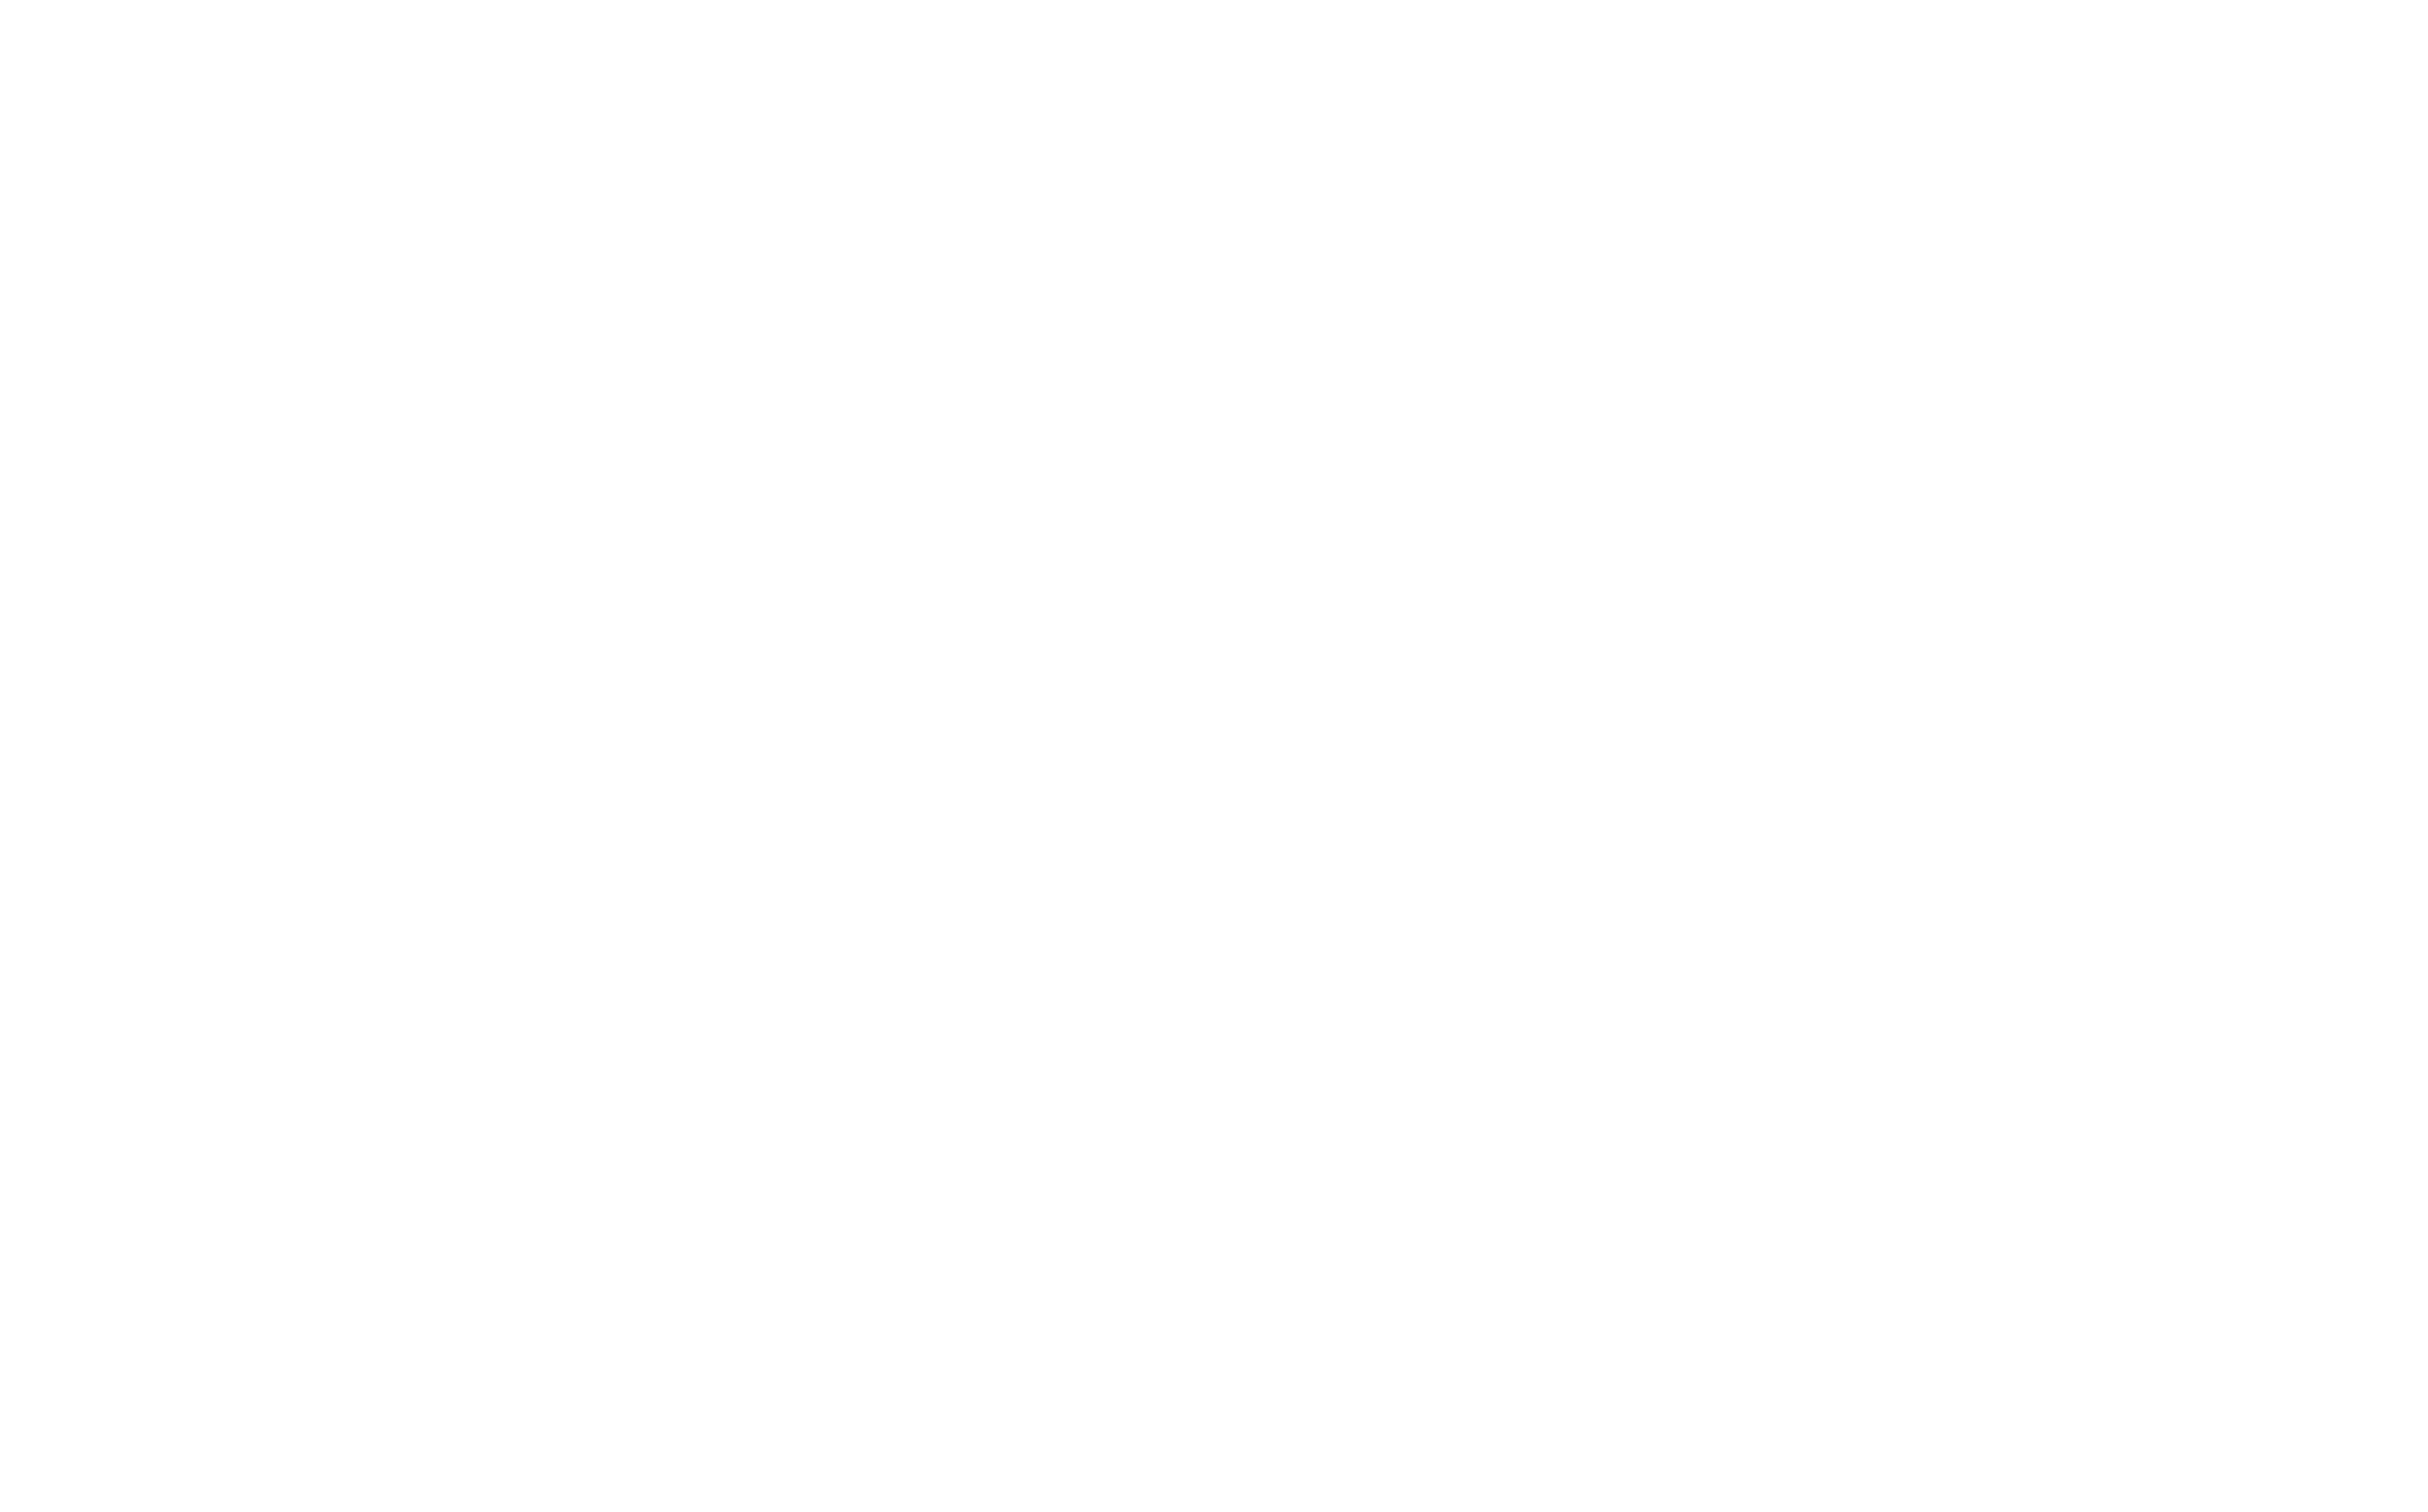 Mount Rushmore icon